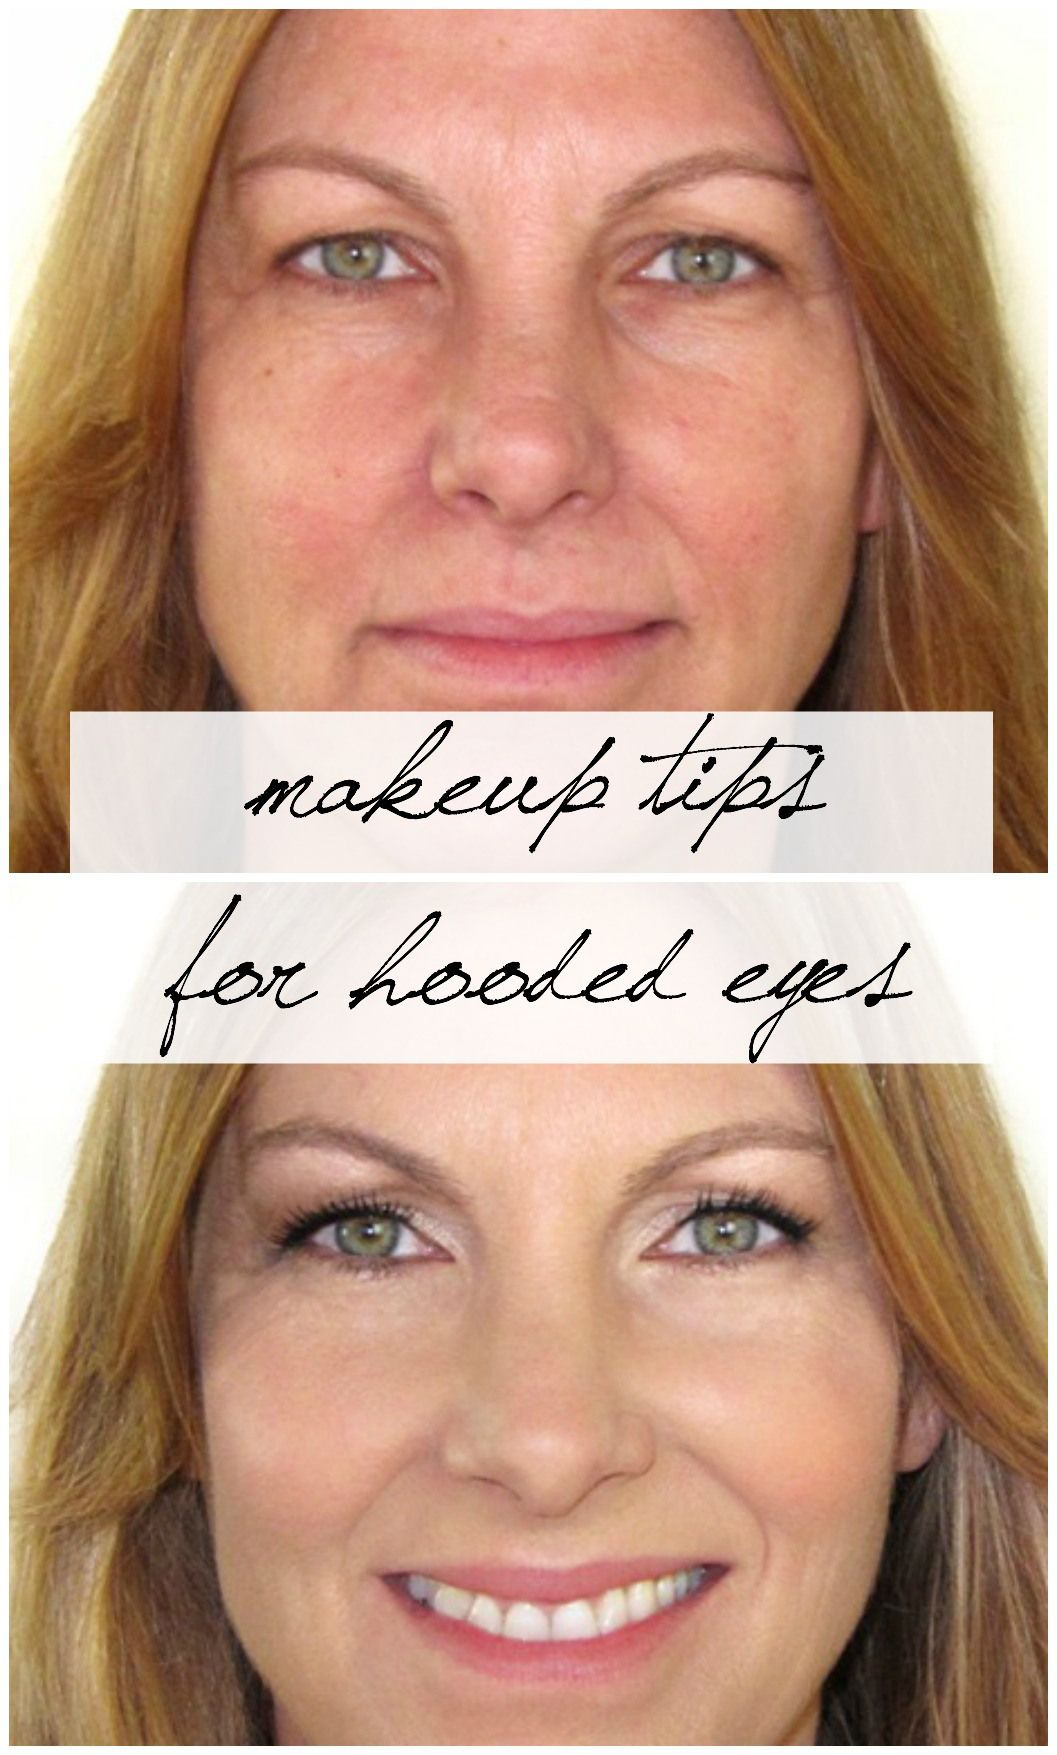 Smokey Eye Tutorial For Women Over 50 With Hooded Crepey Eyelids + ...